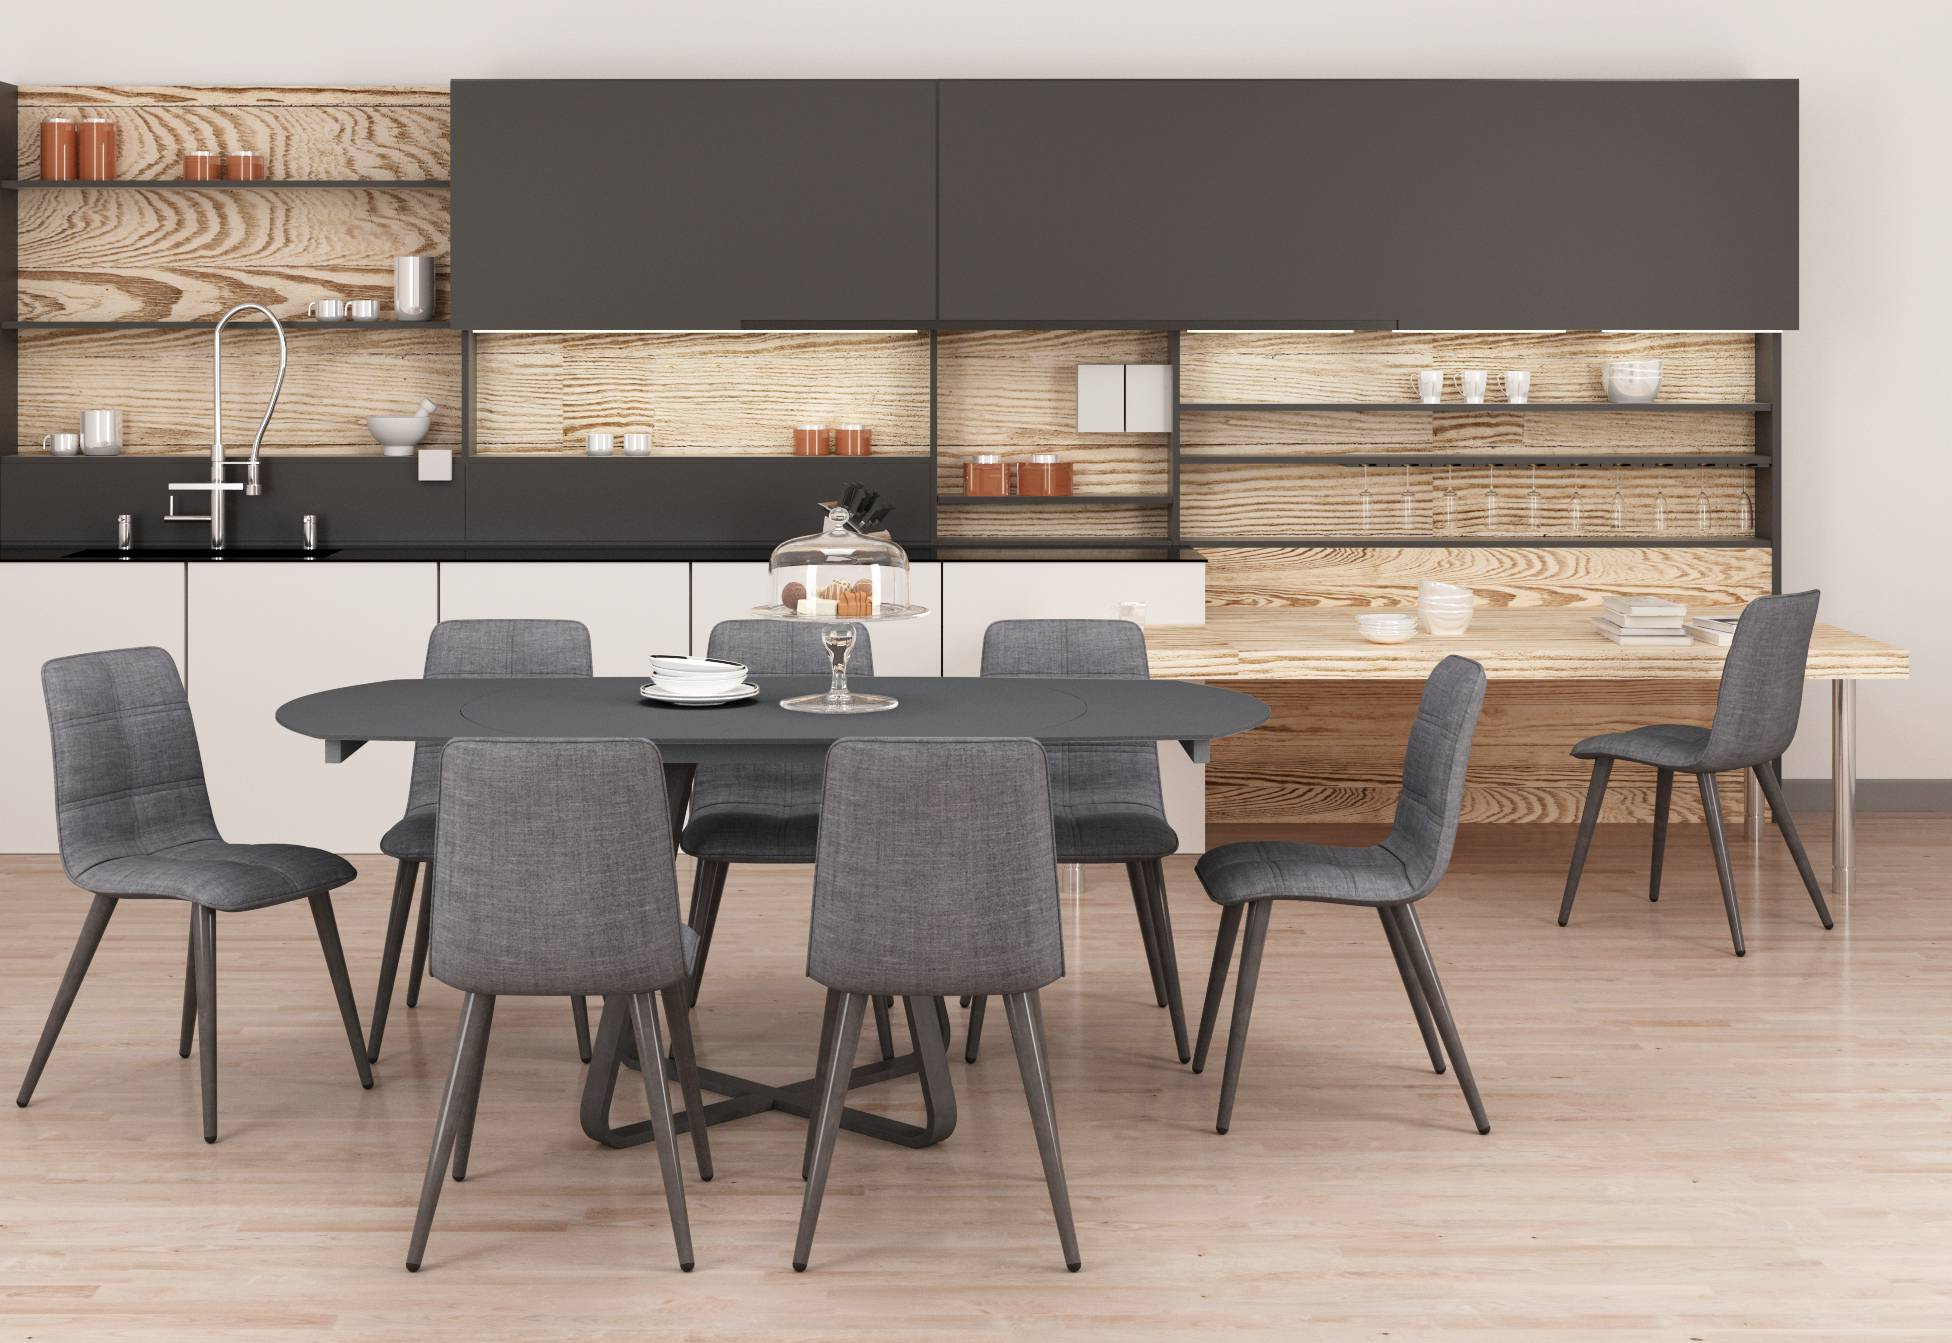 2019 Esprit Extending Dining Table pertaining to Black Wash Banks Extending Dining Tables